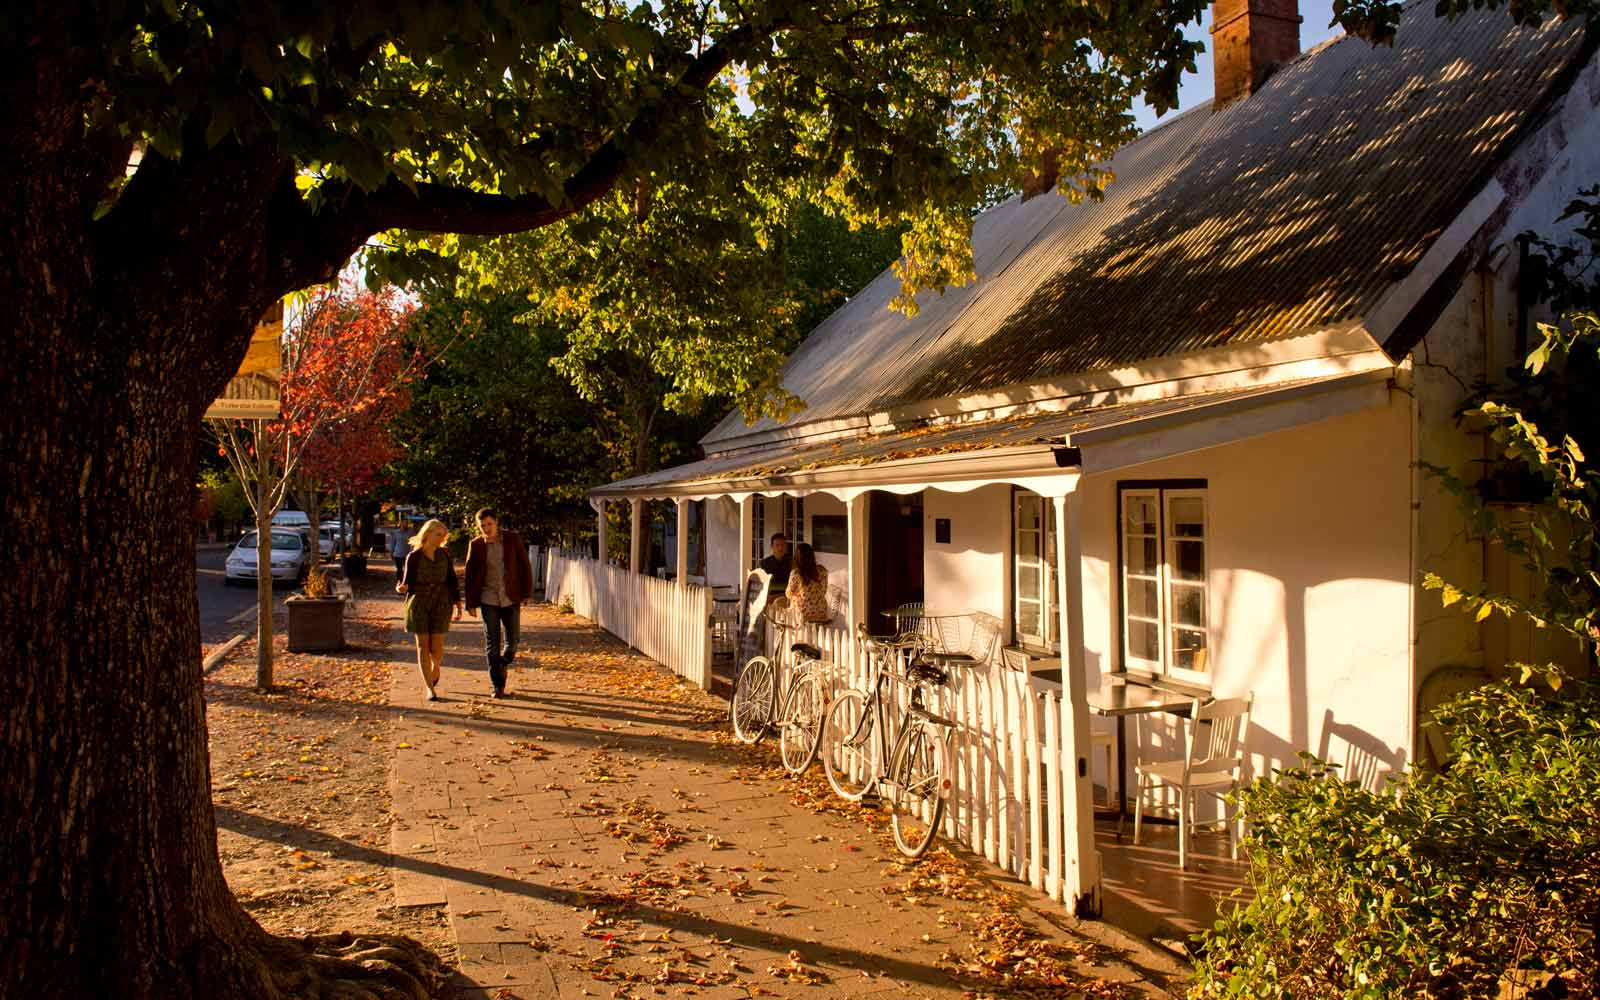 The white house in Hahndorf, Australien